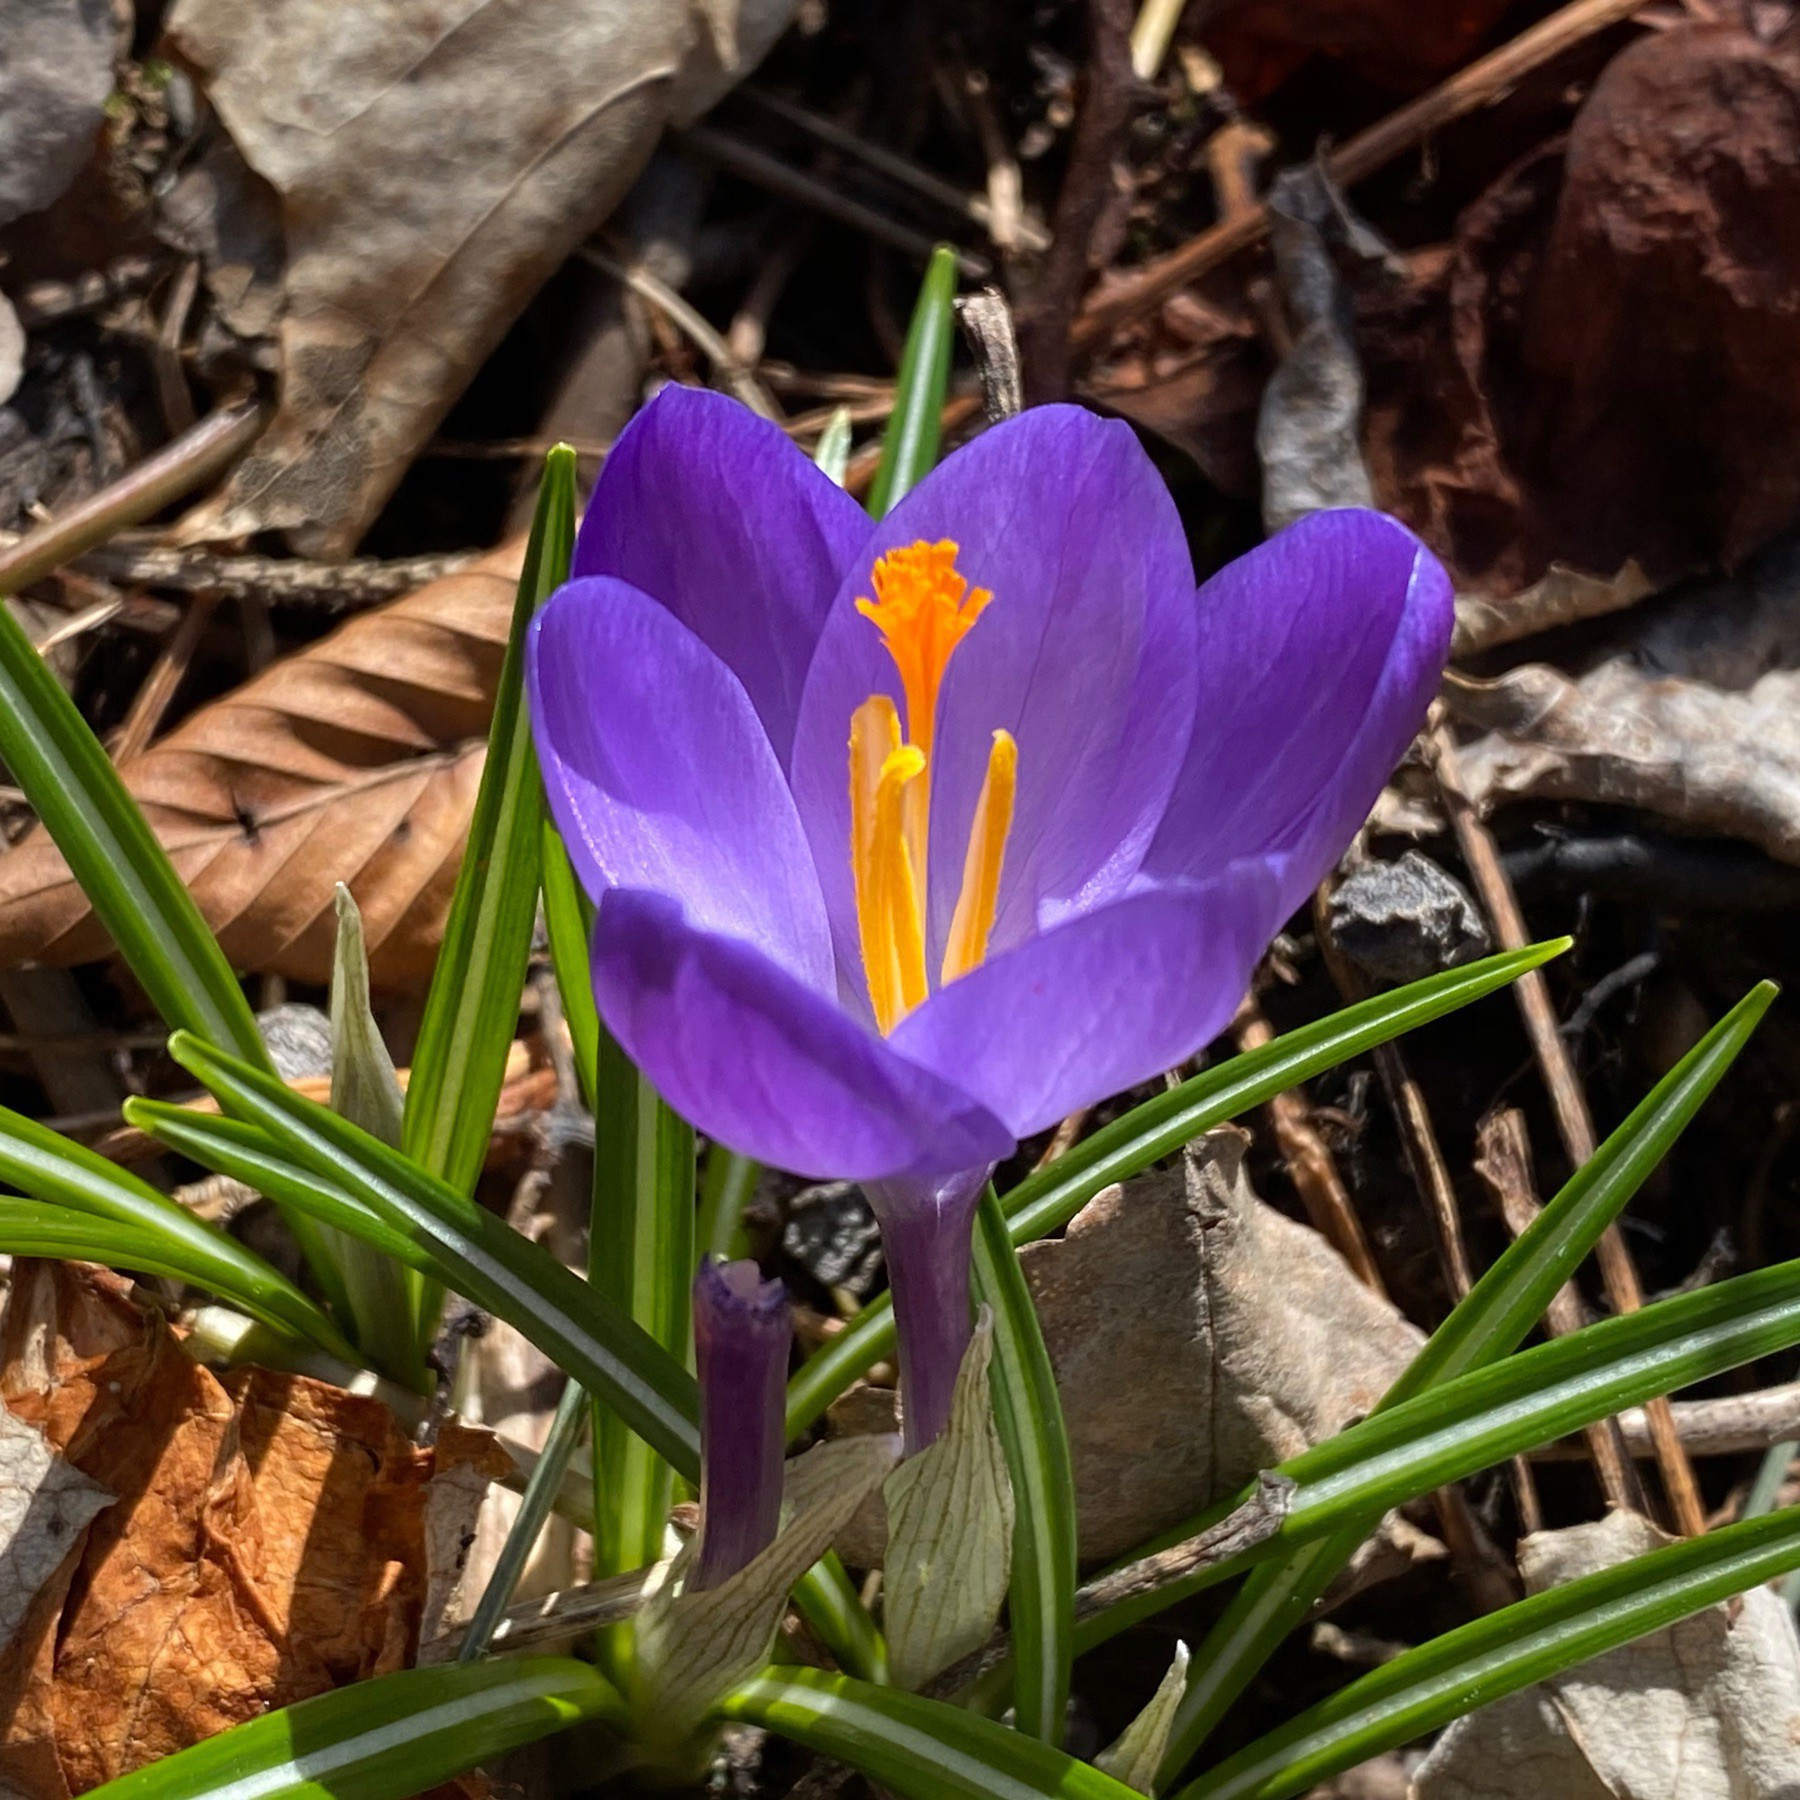 Crocus and leaves.